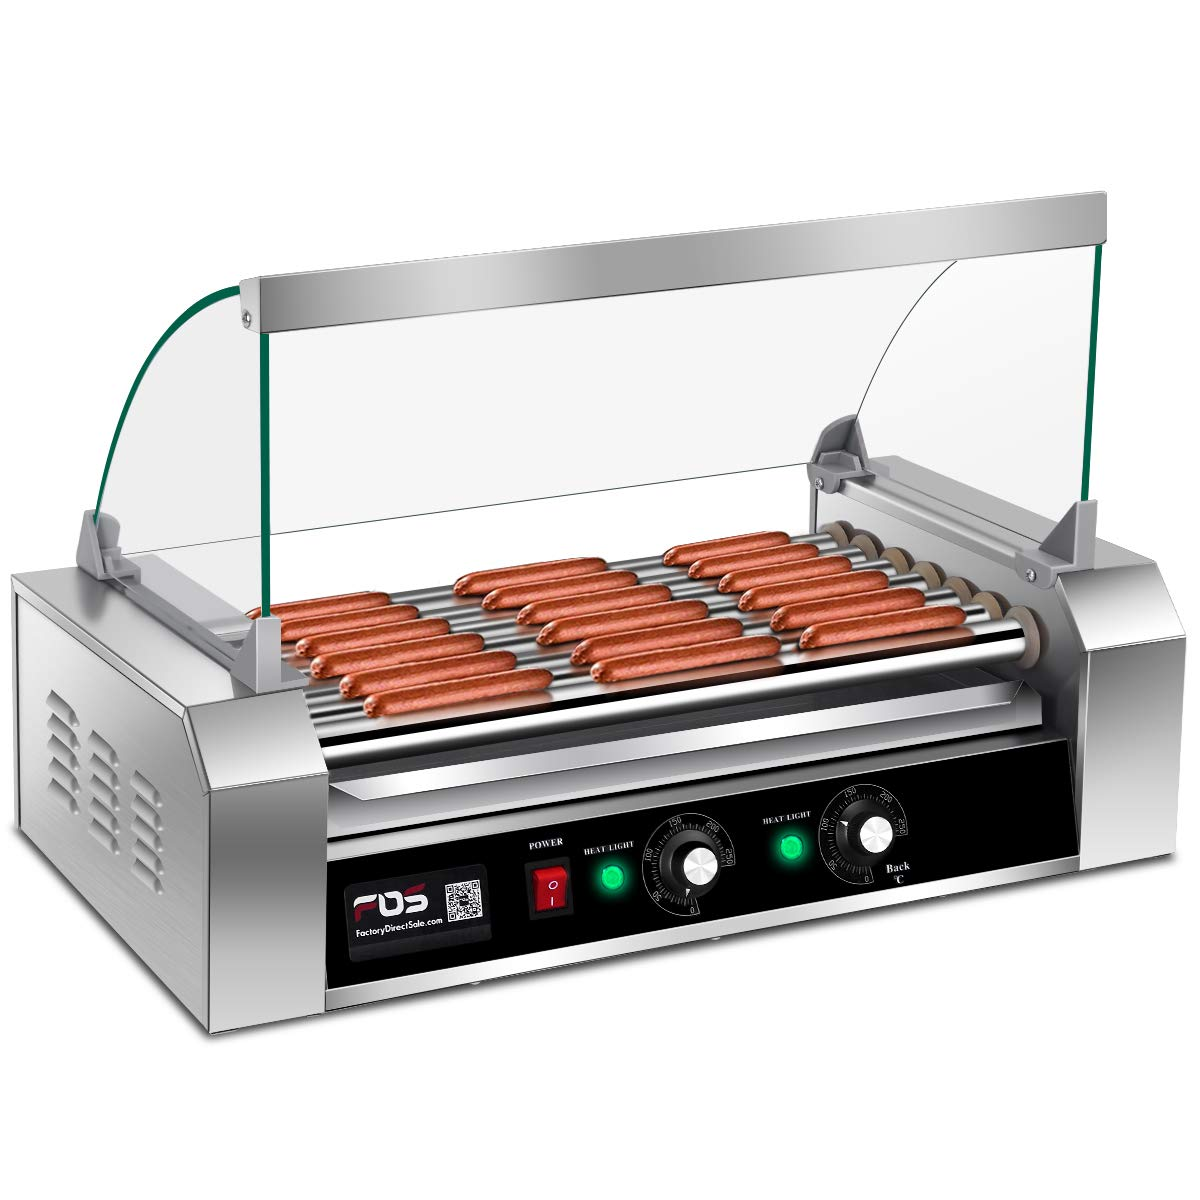 Giantex Electric Sausage Grill Hot Dog Grill Cooker 7 Rollers for 18 Hotdogs Stainless Steel Hot Dog Warmer Sausage Grilling Machine Sausage Roller Grill w/Cover, Commercial Grade 1200W by Giantex